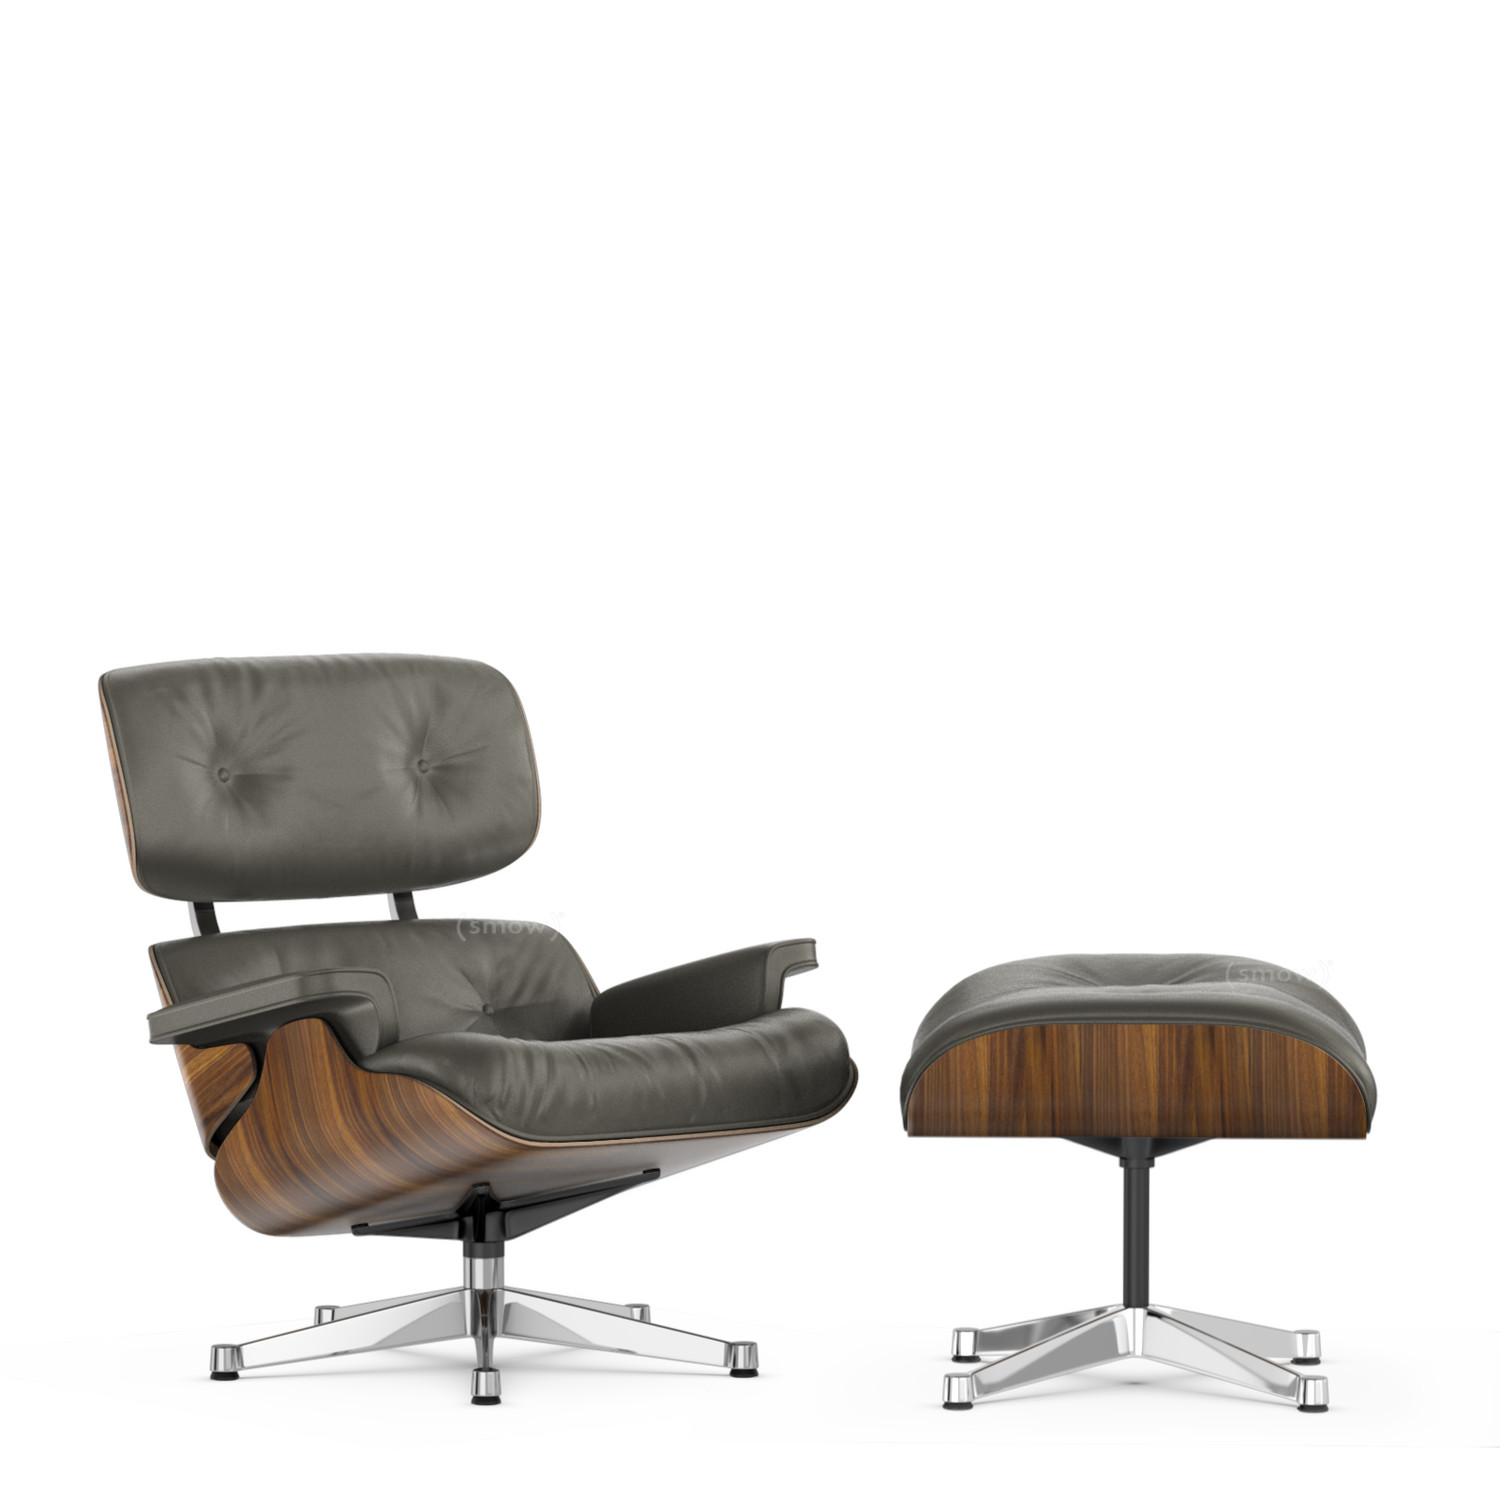 Eames Lounge Sessel Vitra Lounge Chair Ottoman Beauty Versions Walnut With Black Pigmentation Umbra Grey 89 Cm Aluminium Chrome Plated